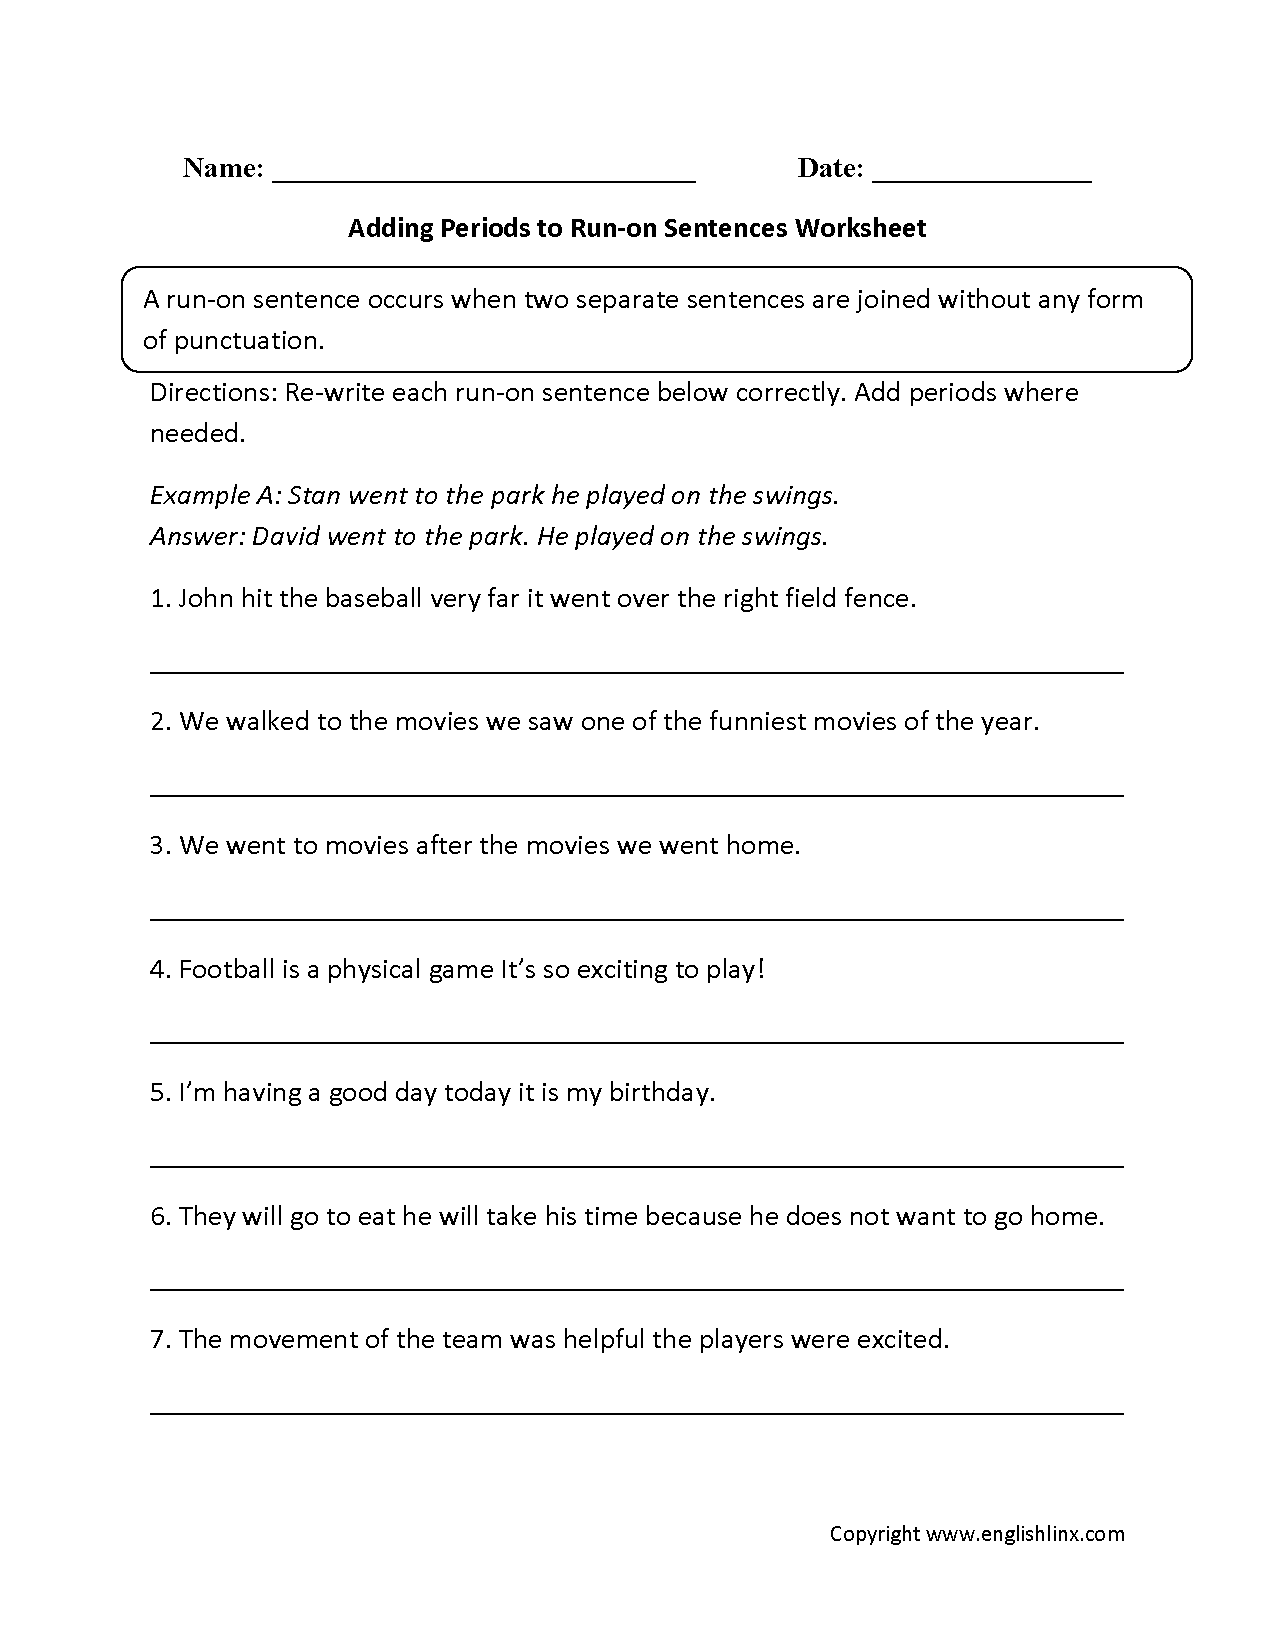 Worksheets Punctuation Practice Worksheet adding periods to run on sentences worksheets grammatically minded worksheets